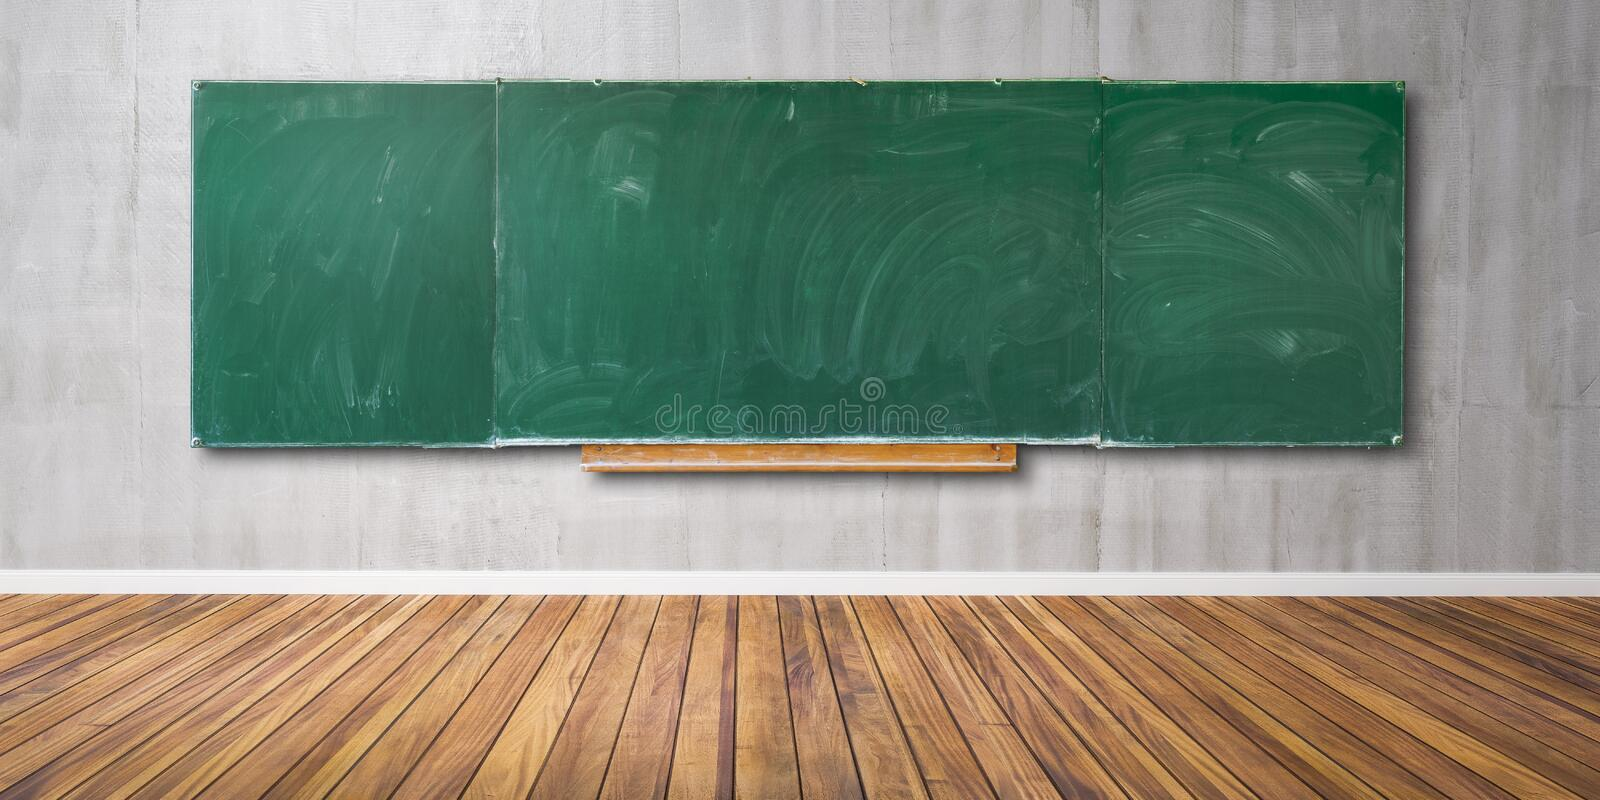 Blank green chalkboard, blackboard texture with copy space hangs on gray grunge wall and wooden floor 3D-Illustration royalty free stock photo